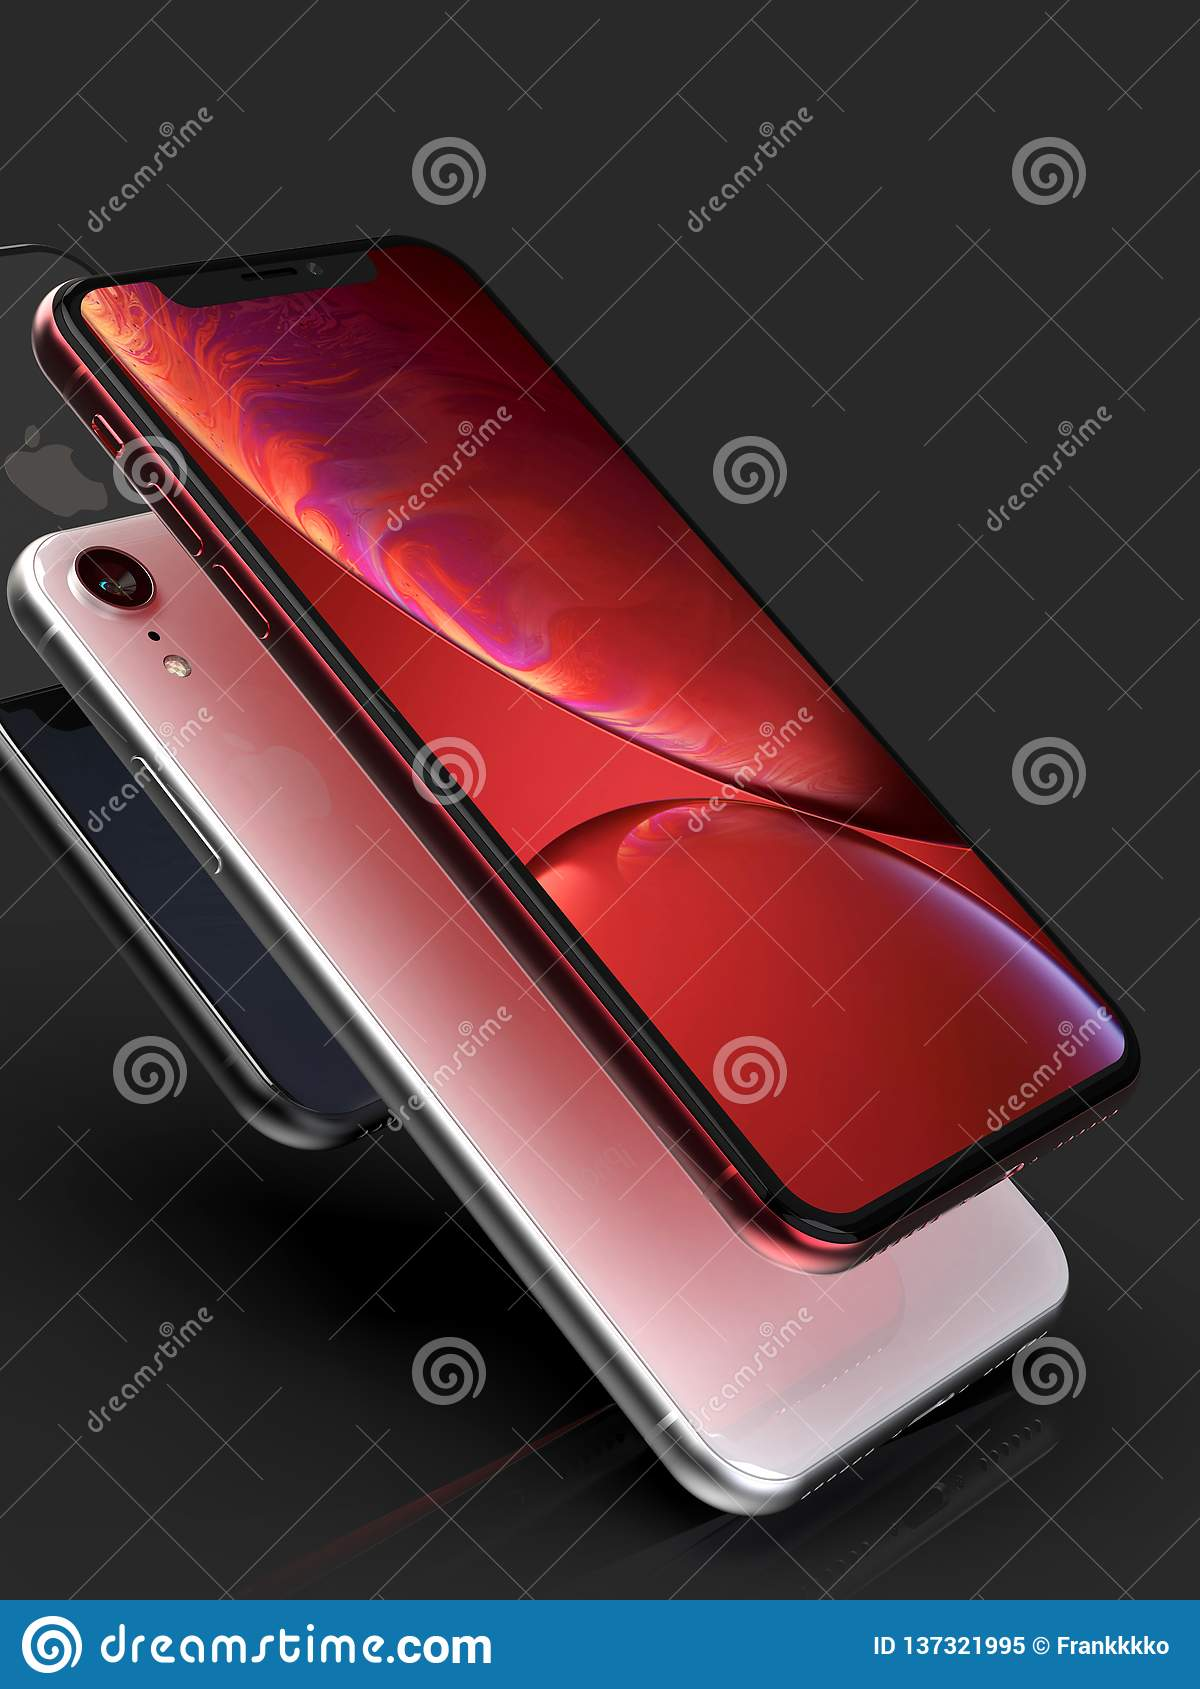 3 Iphone Xr Red Silver And Space Grey Smart Phones On Black